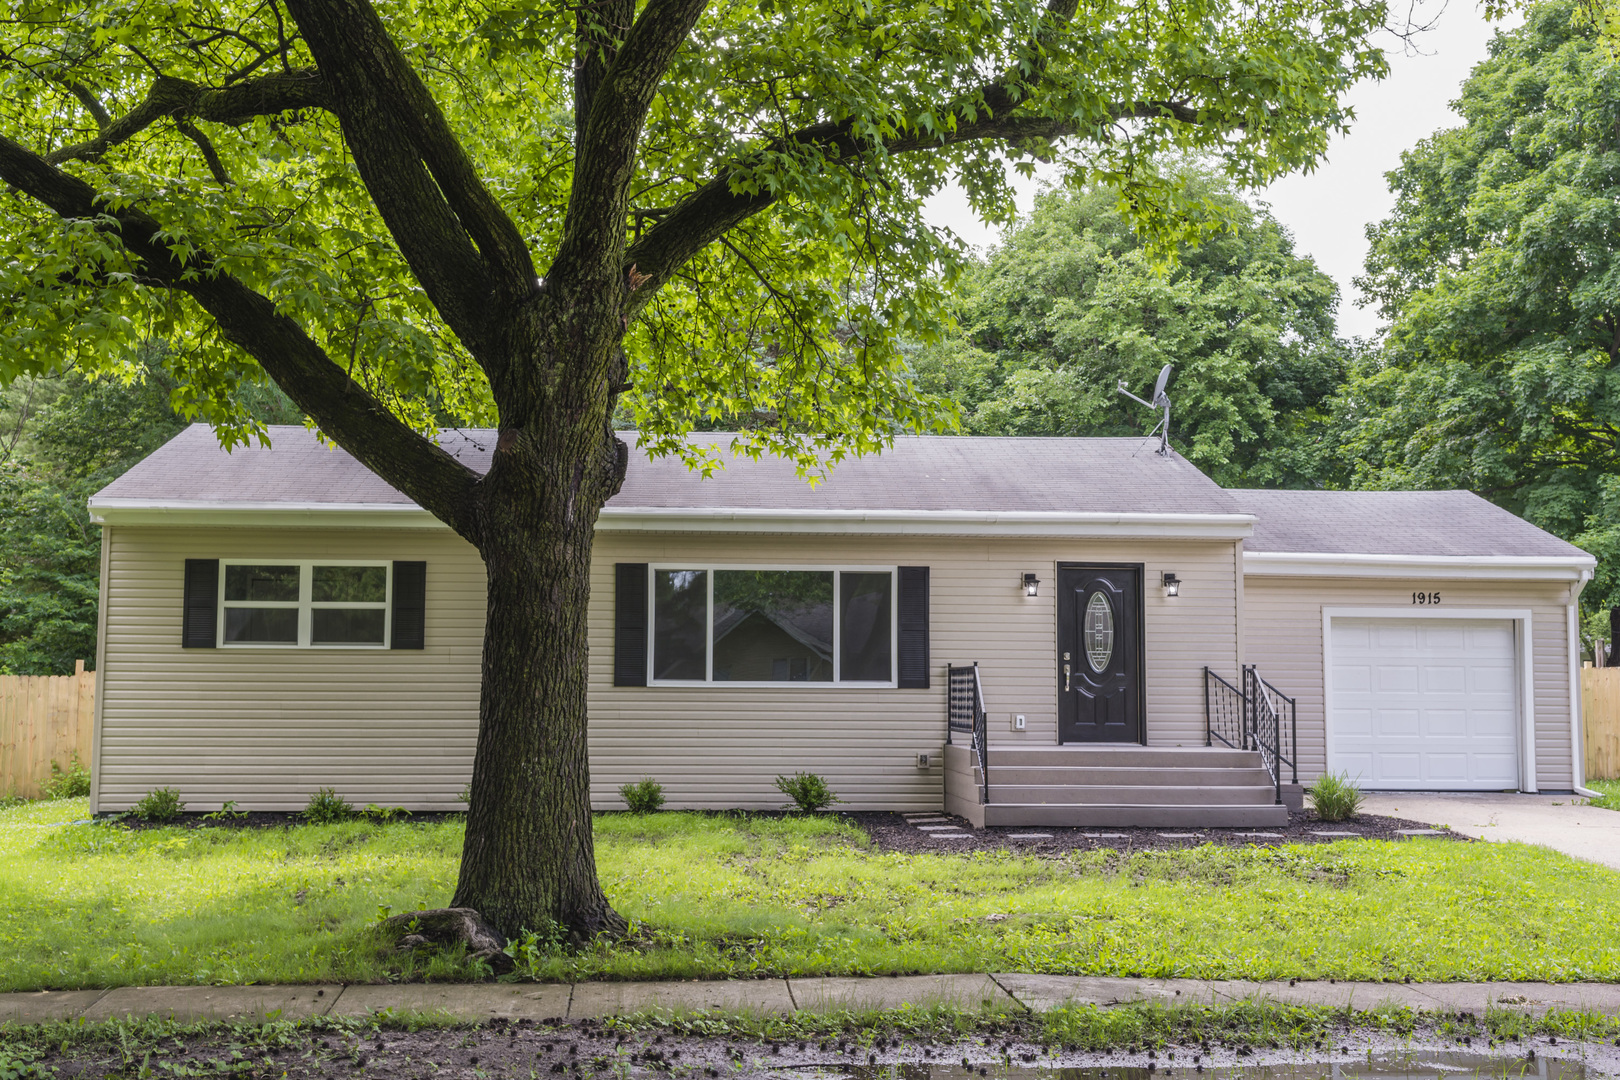 1915 Lynwood Drive, Champaign in Champaign County, IL 61821 Home for Sale